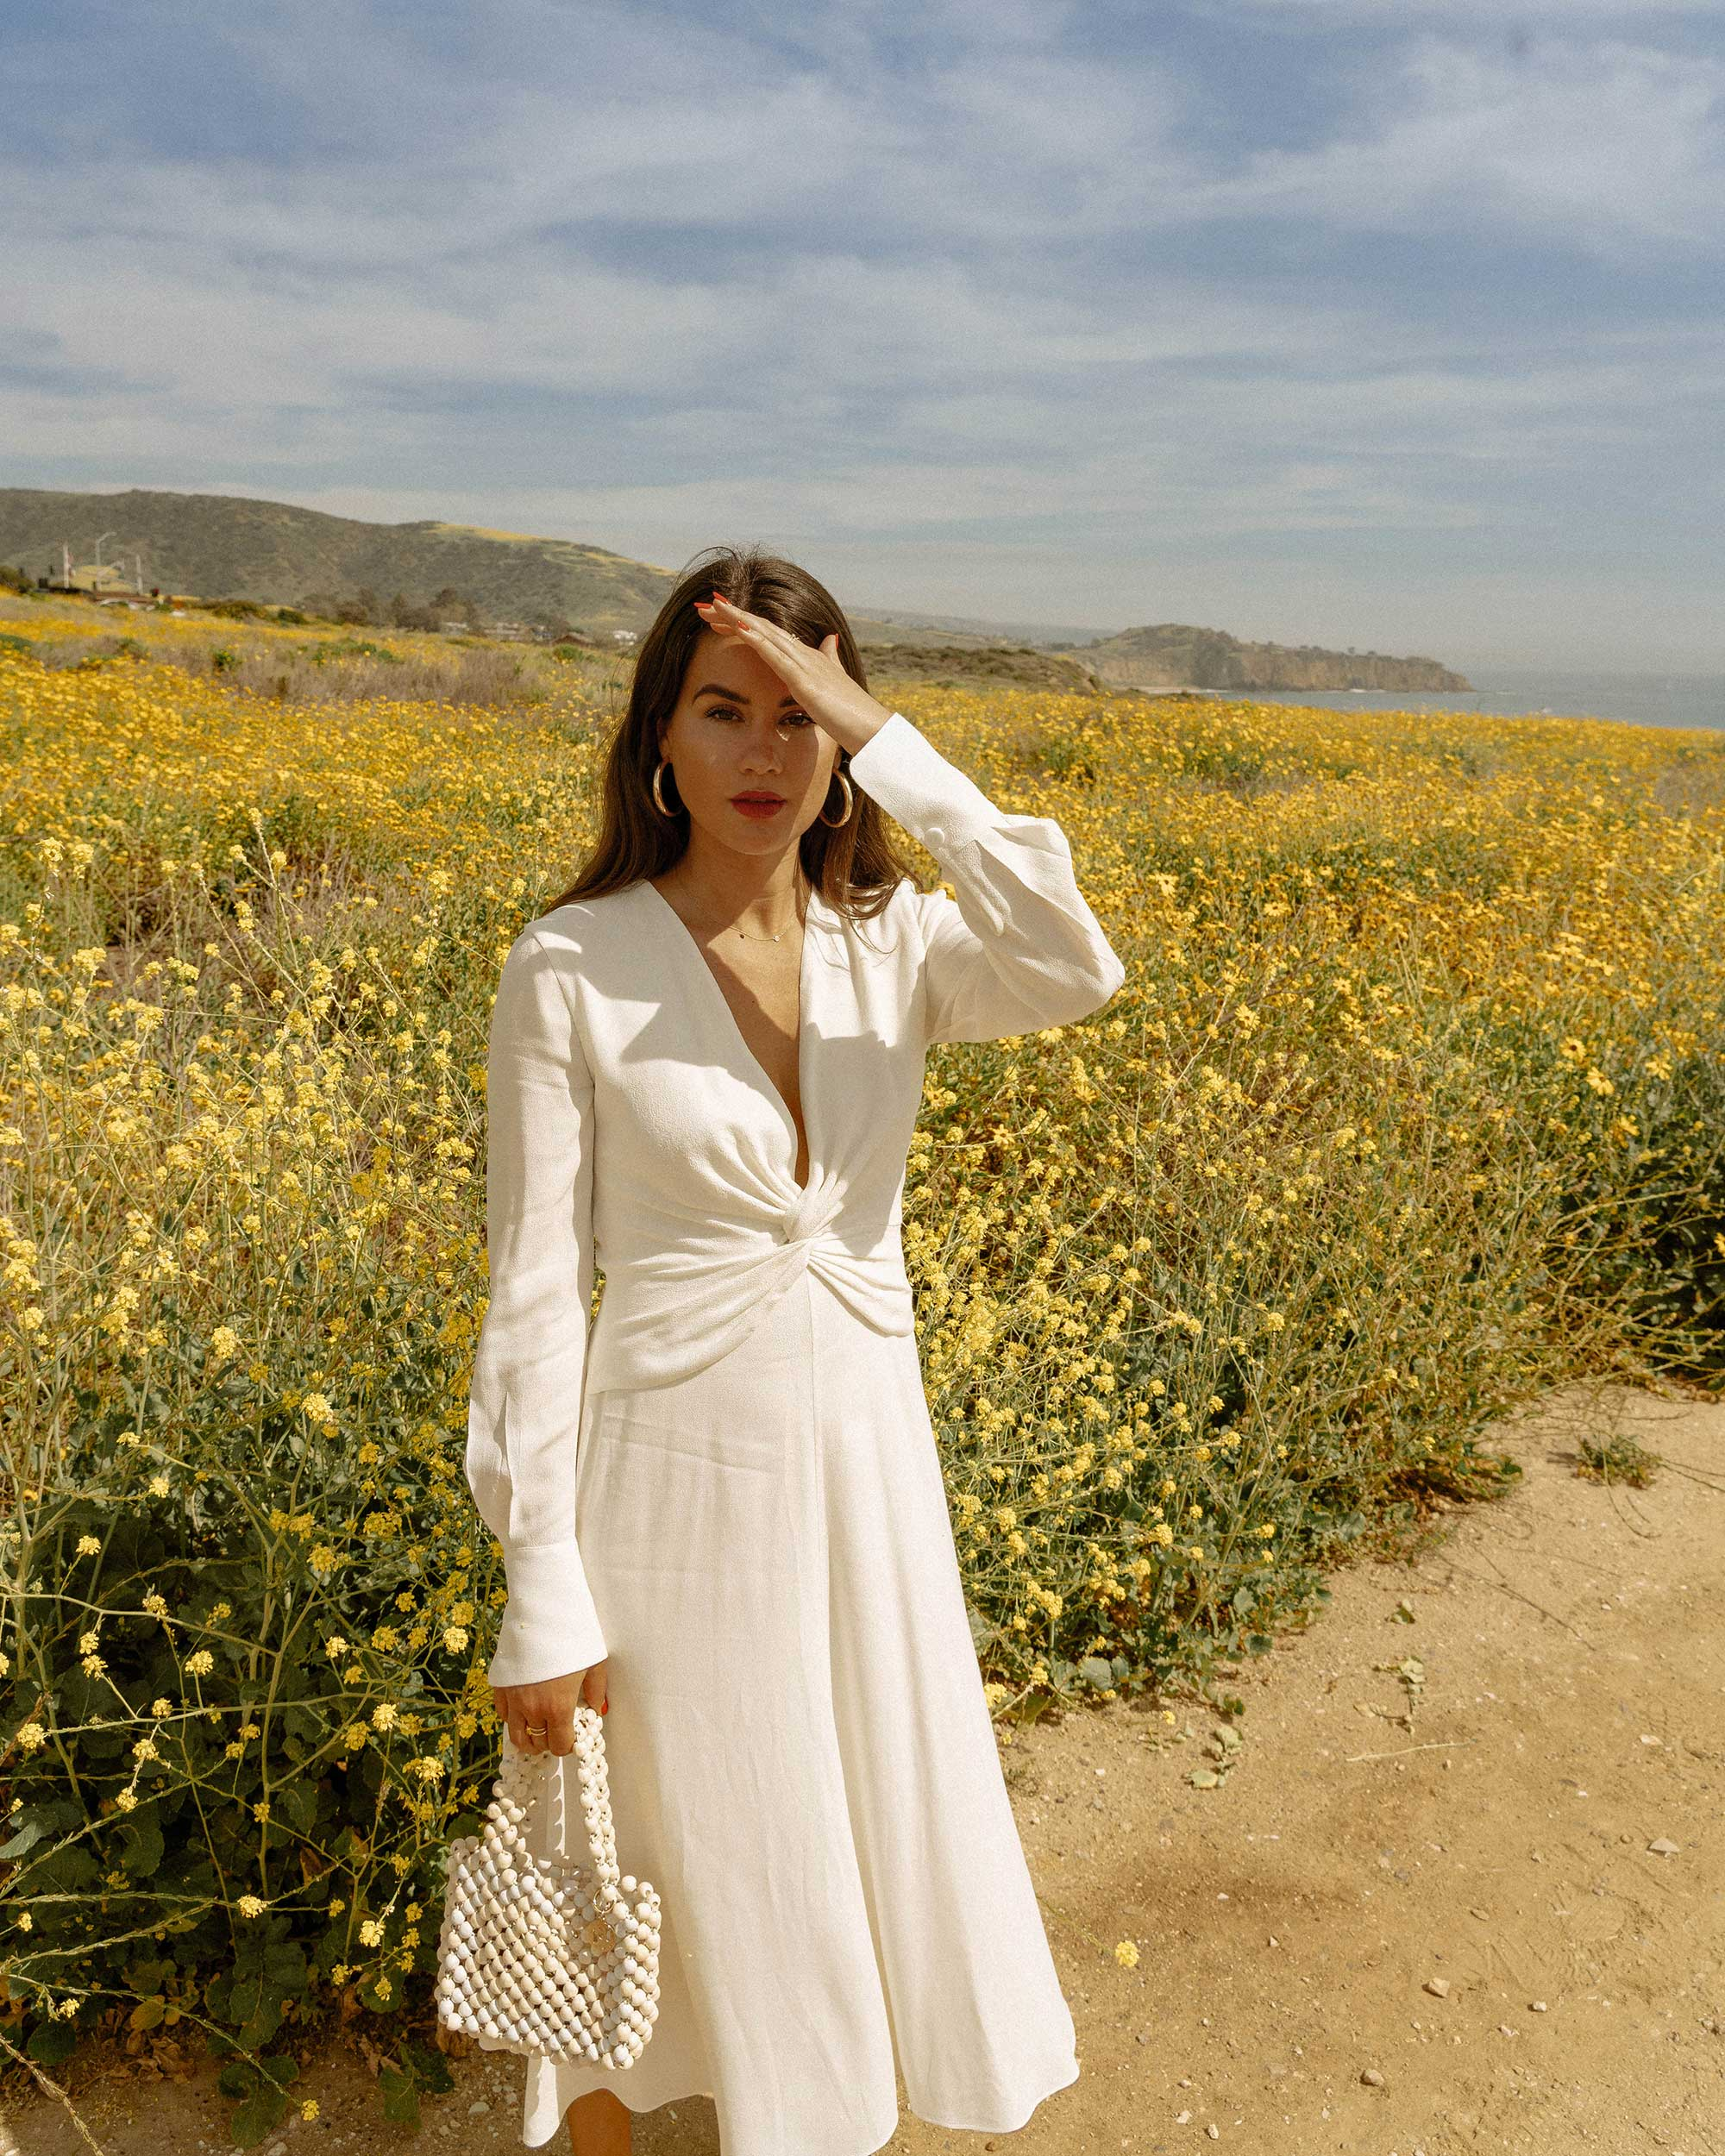 Sarah Butler of Sarah Styles Seattle wears Equipment Faun crepe midi dress in white with a flatteringly knotted front and plunging neckline for the perfect spring outfit   @sarahchristine -9.jpg